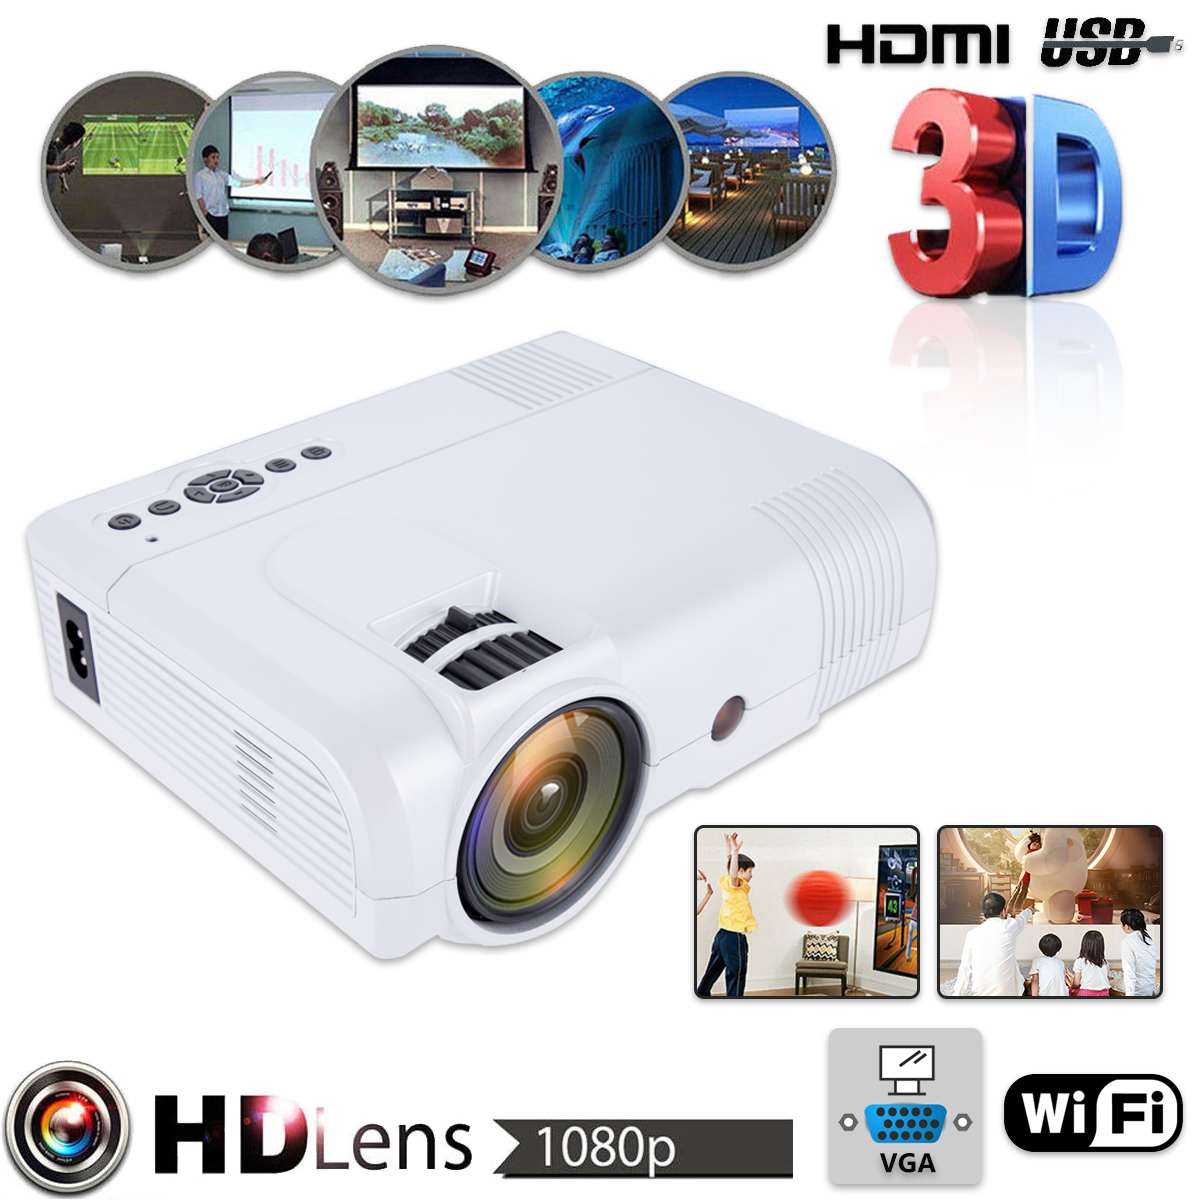 3D 1080P L8 WiFi Version Mini Projector Full HD Home Theater Projector Multimedia VGA USB HDMI LED Projector3D 1080P L8 WiFi Version Mini Projector Full HD Home Theater Projector Multimedia VGA USB HDMI LED Projector